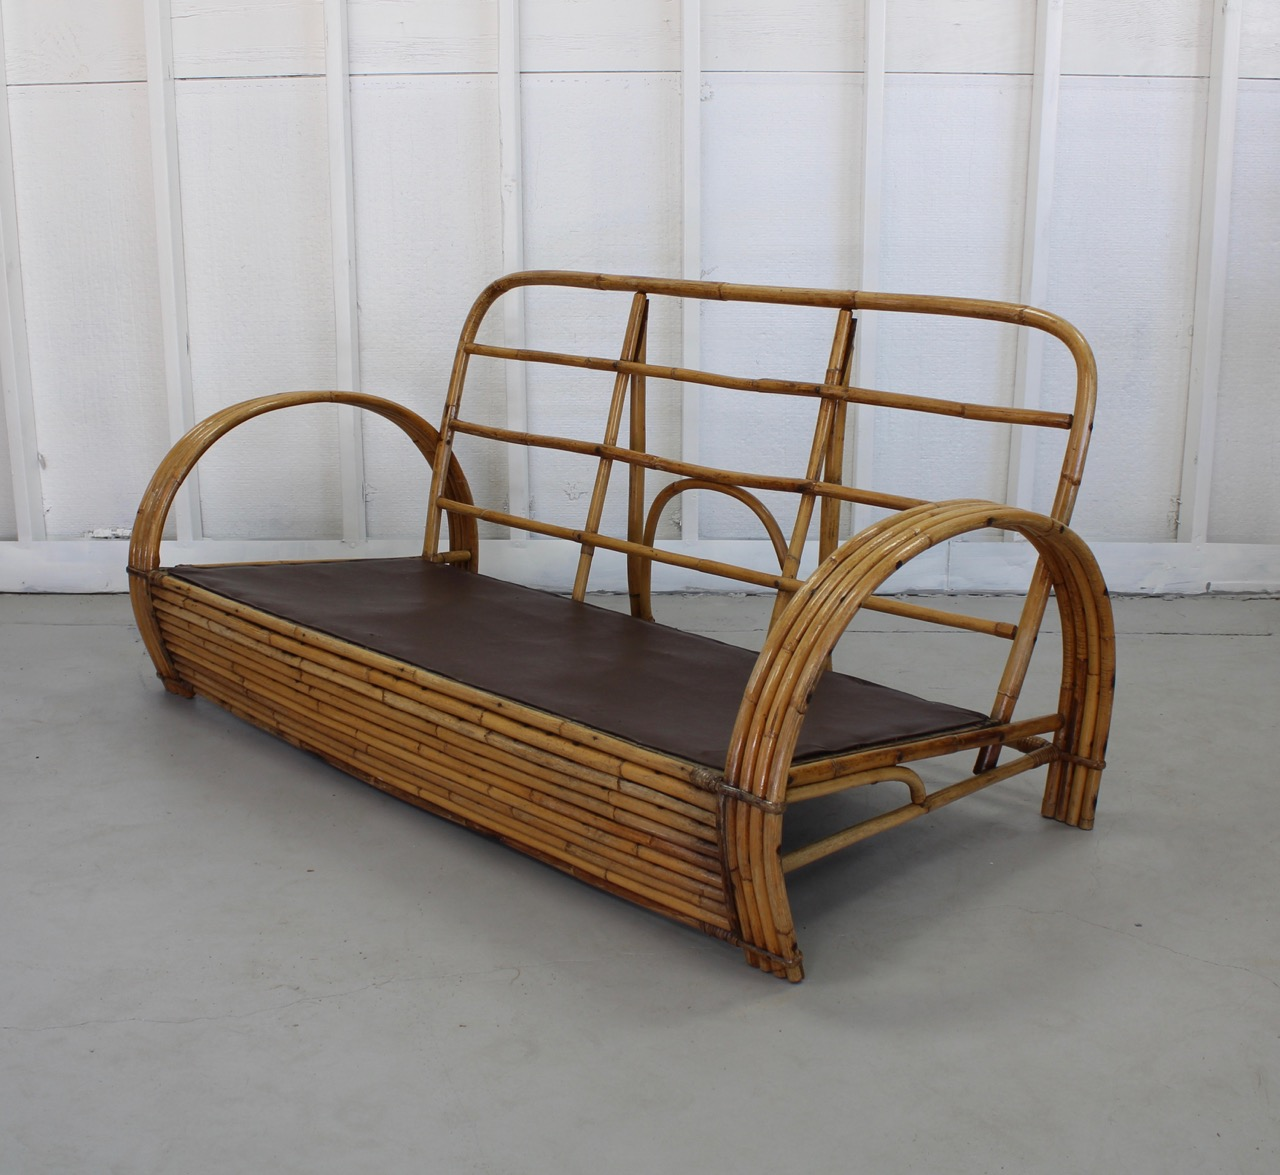 Vintage Rattan Sofa in classic  curvy  stacked design